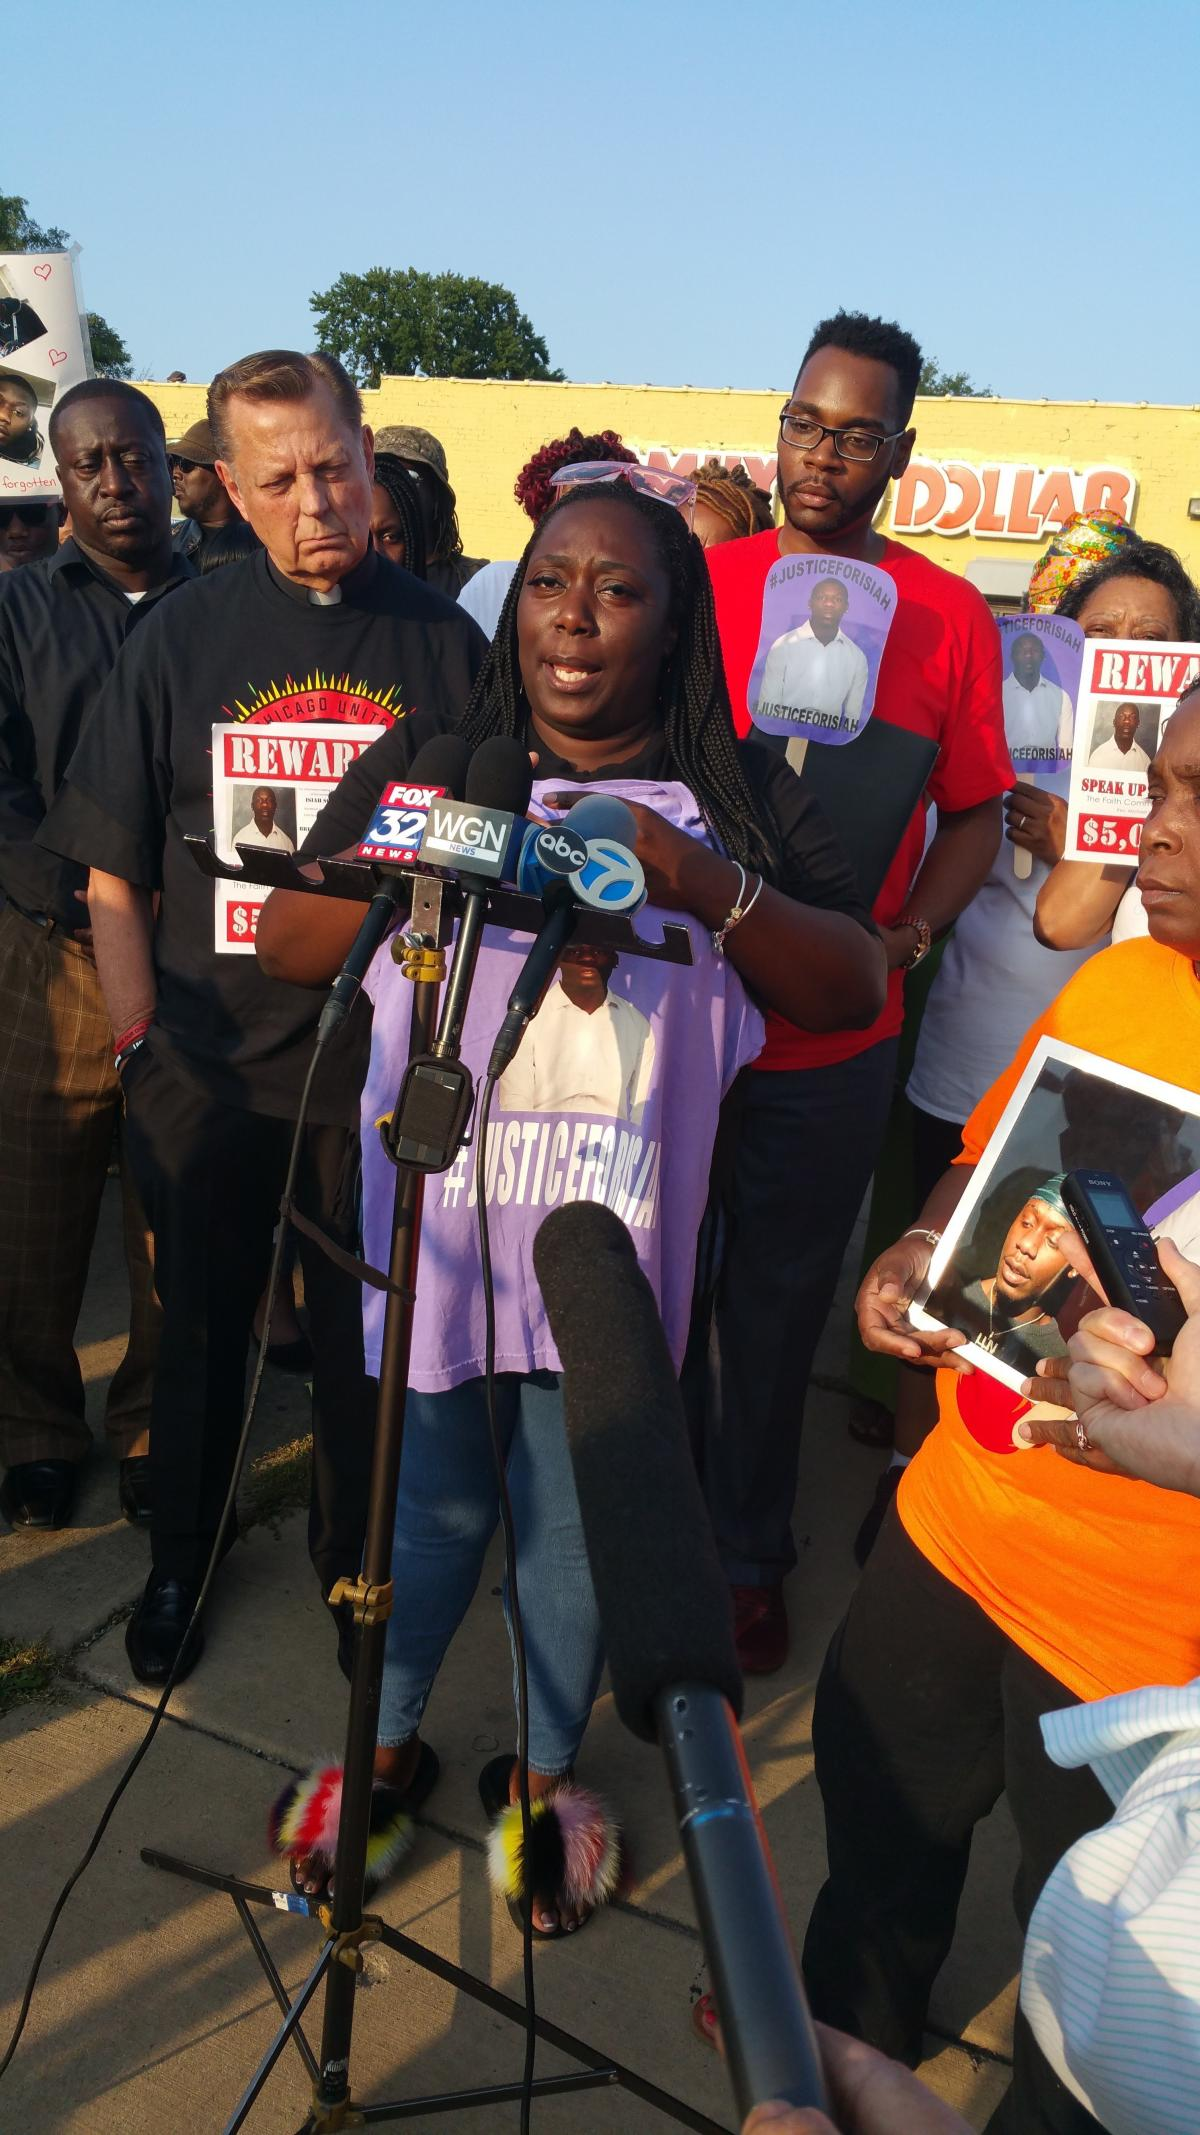 Keisha Stansberry's son Isiah Scott was fatally shot in March. Stansberry is offering a $5,000 reward for information leading to the shooter's arrest.